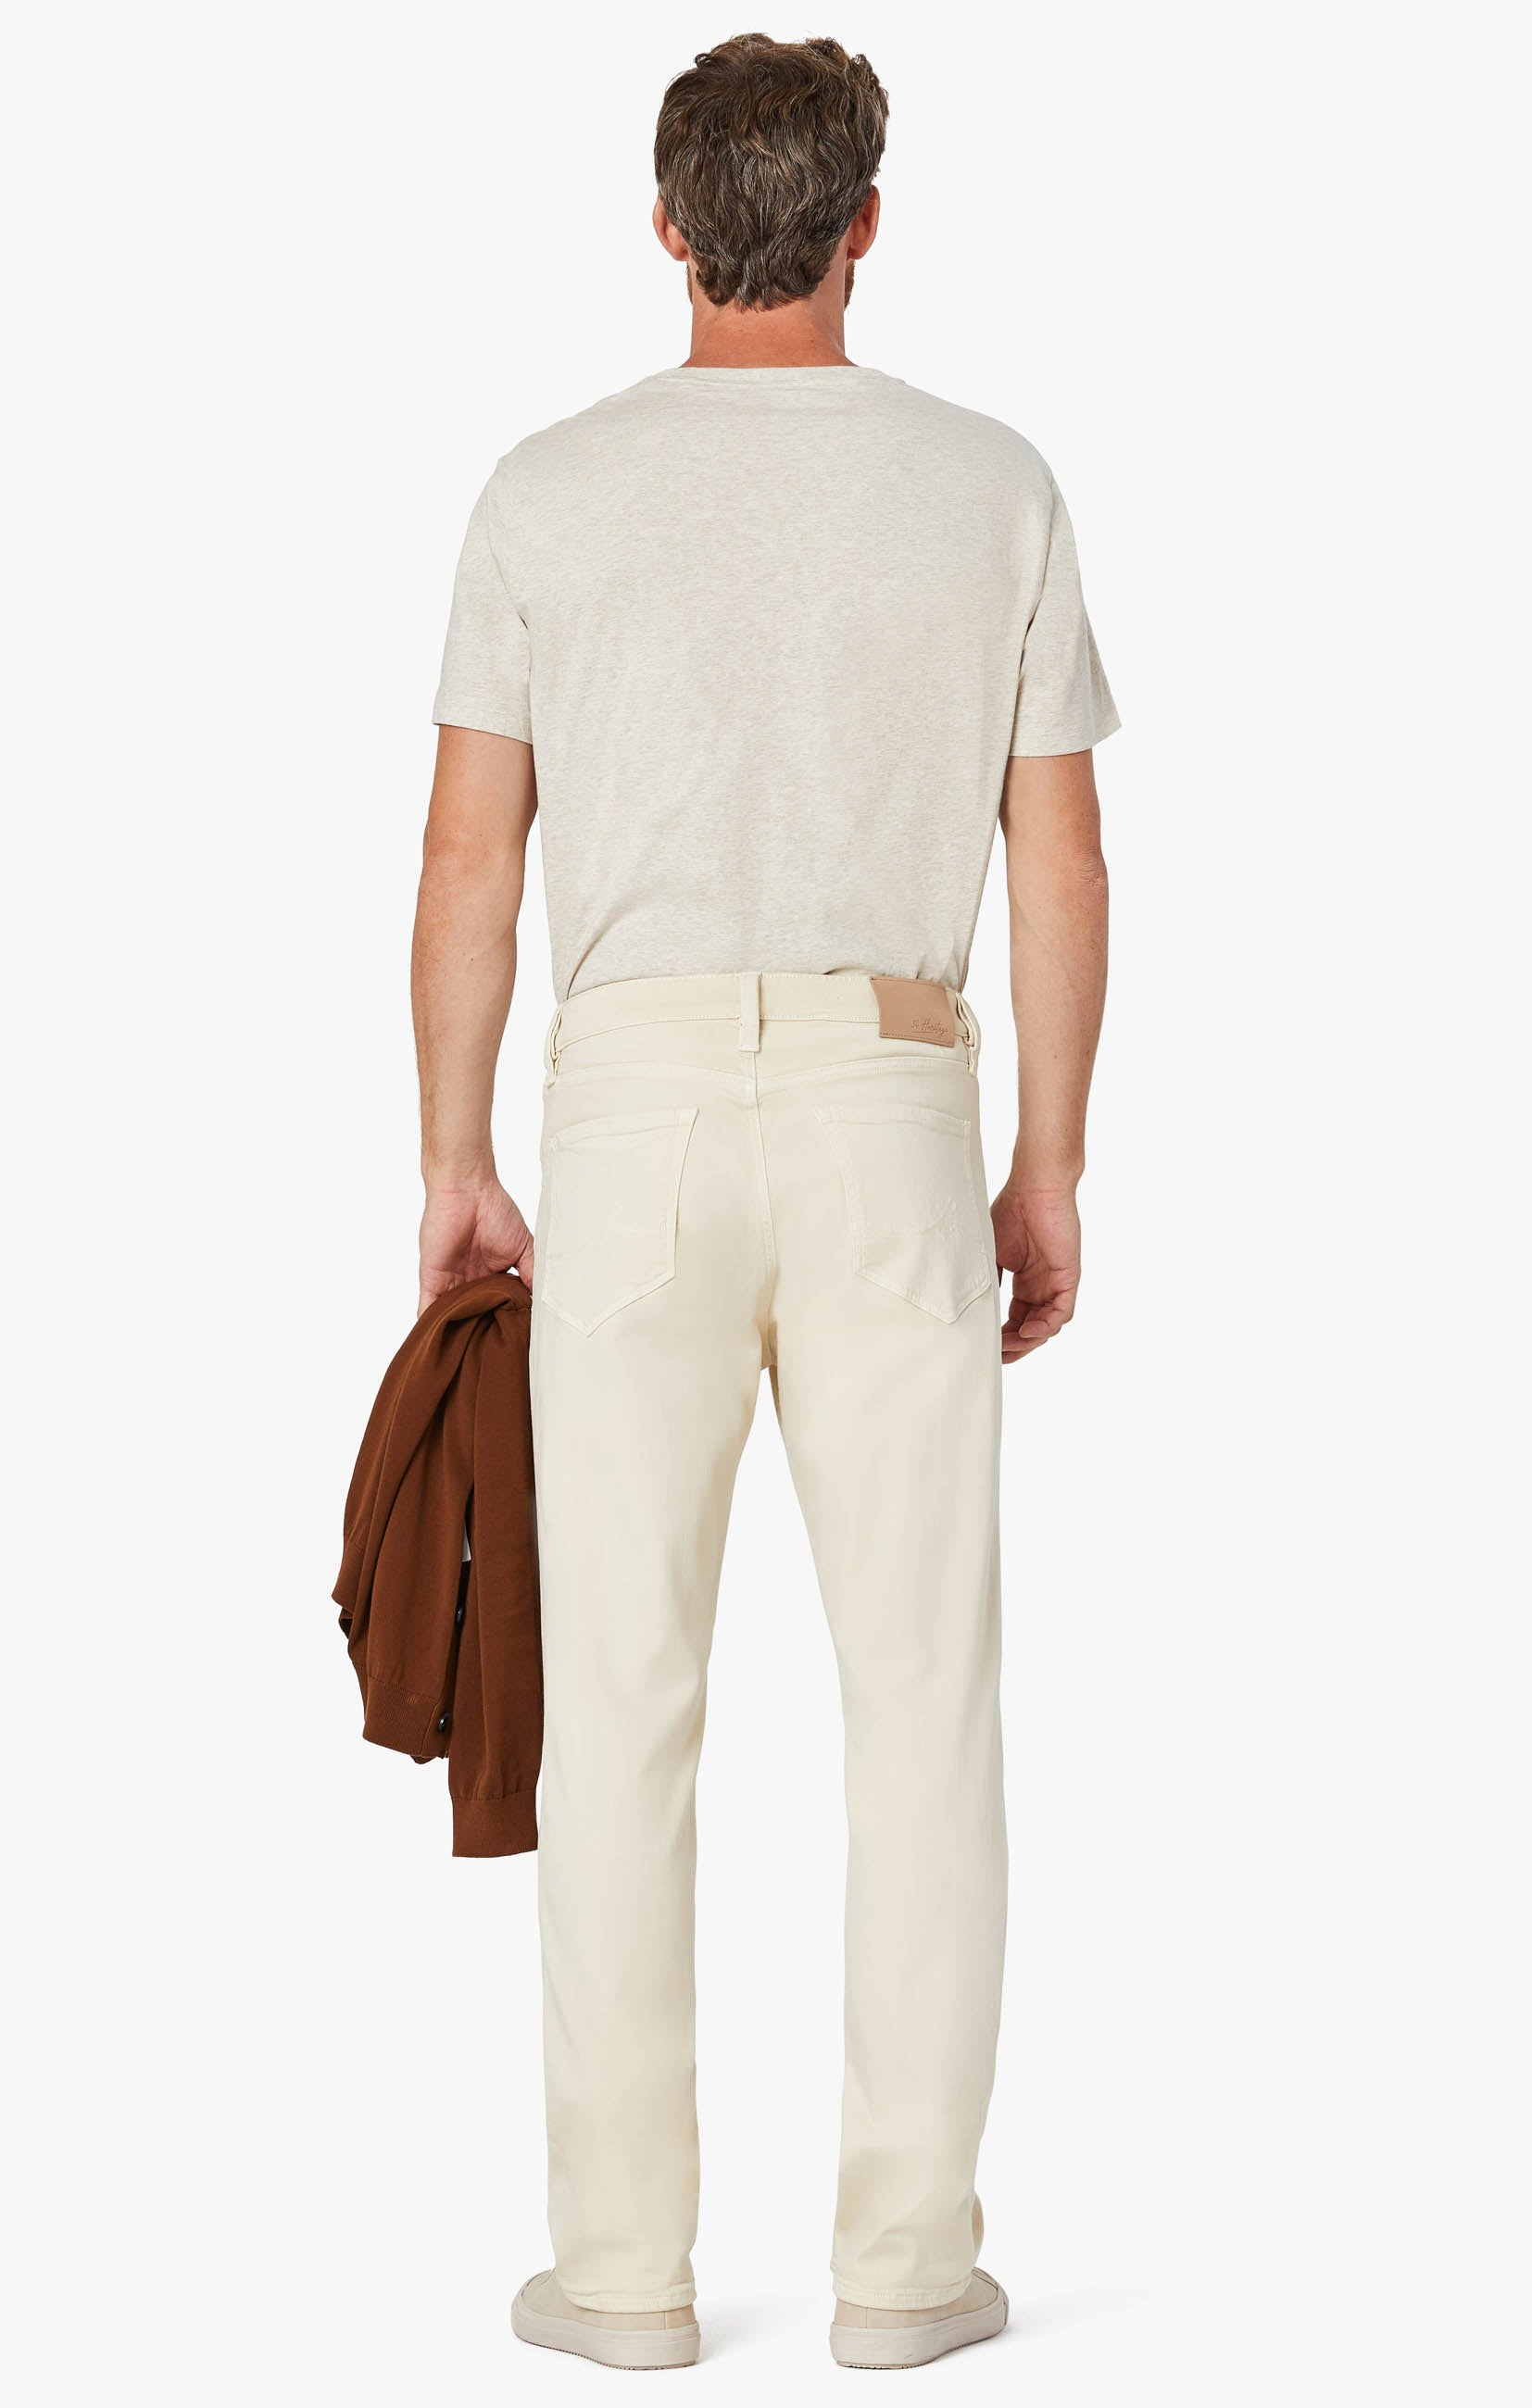 Charisma Relaxed Straight Pants In Natural Comfort Image 3